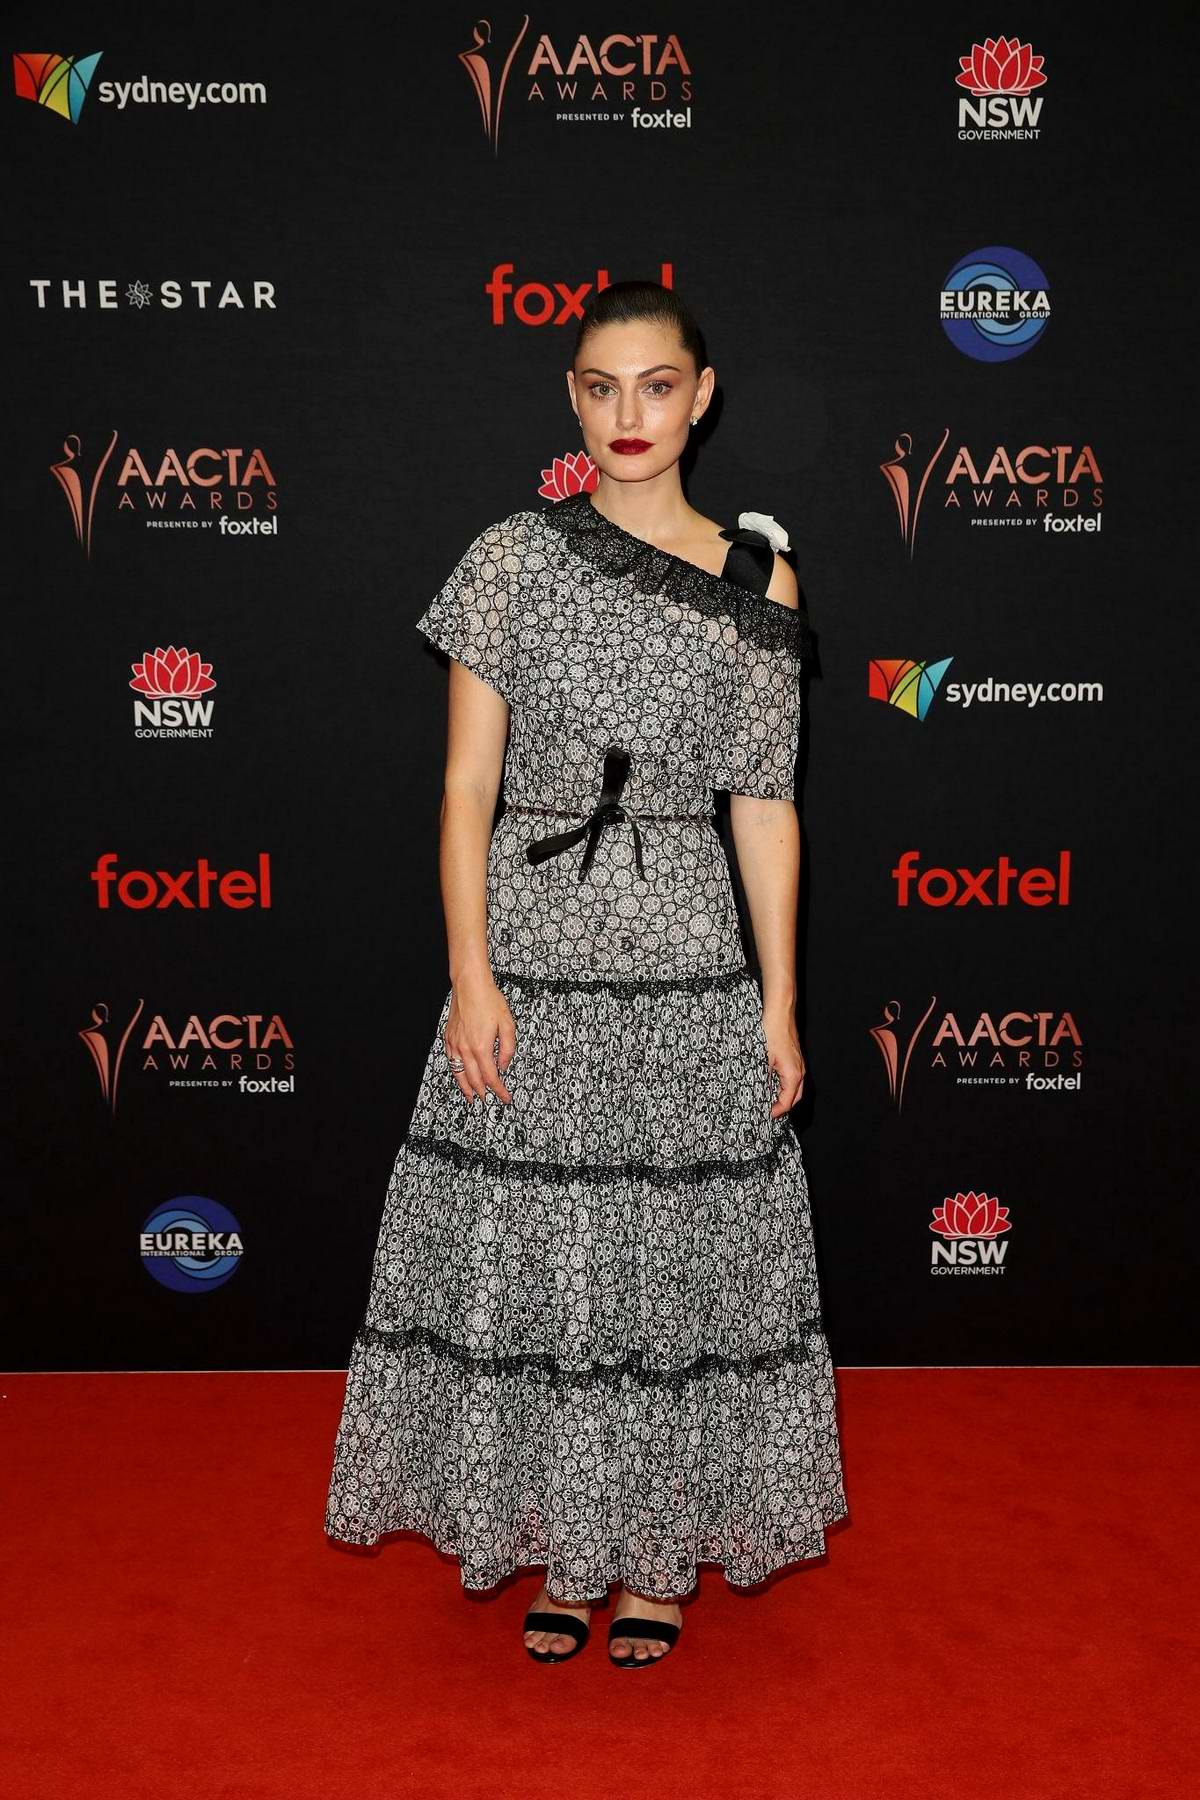 Phoebe Tonkin attends the 2019 AACTA Awards at The Star in Sydney, Australia